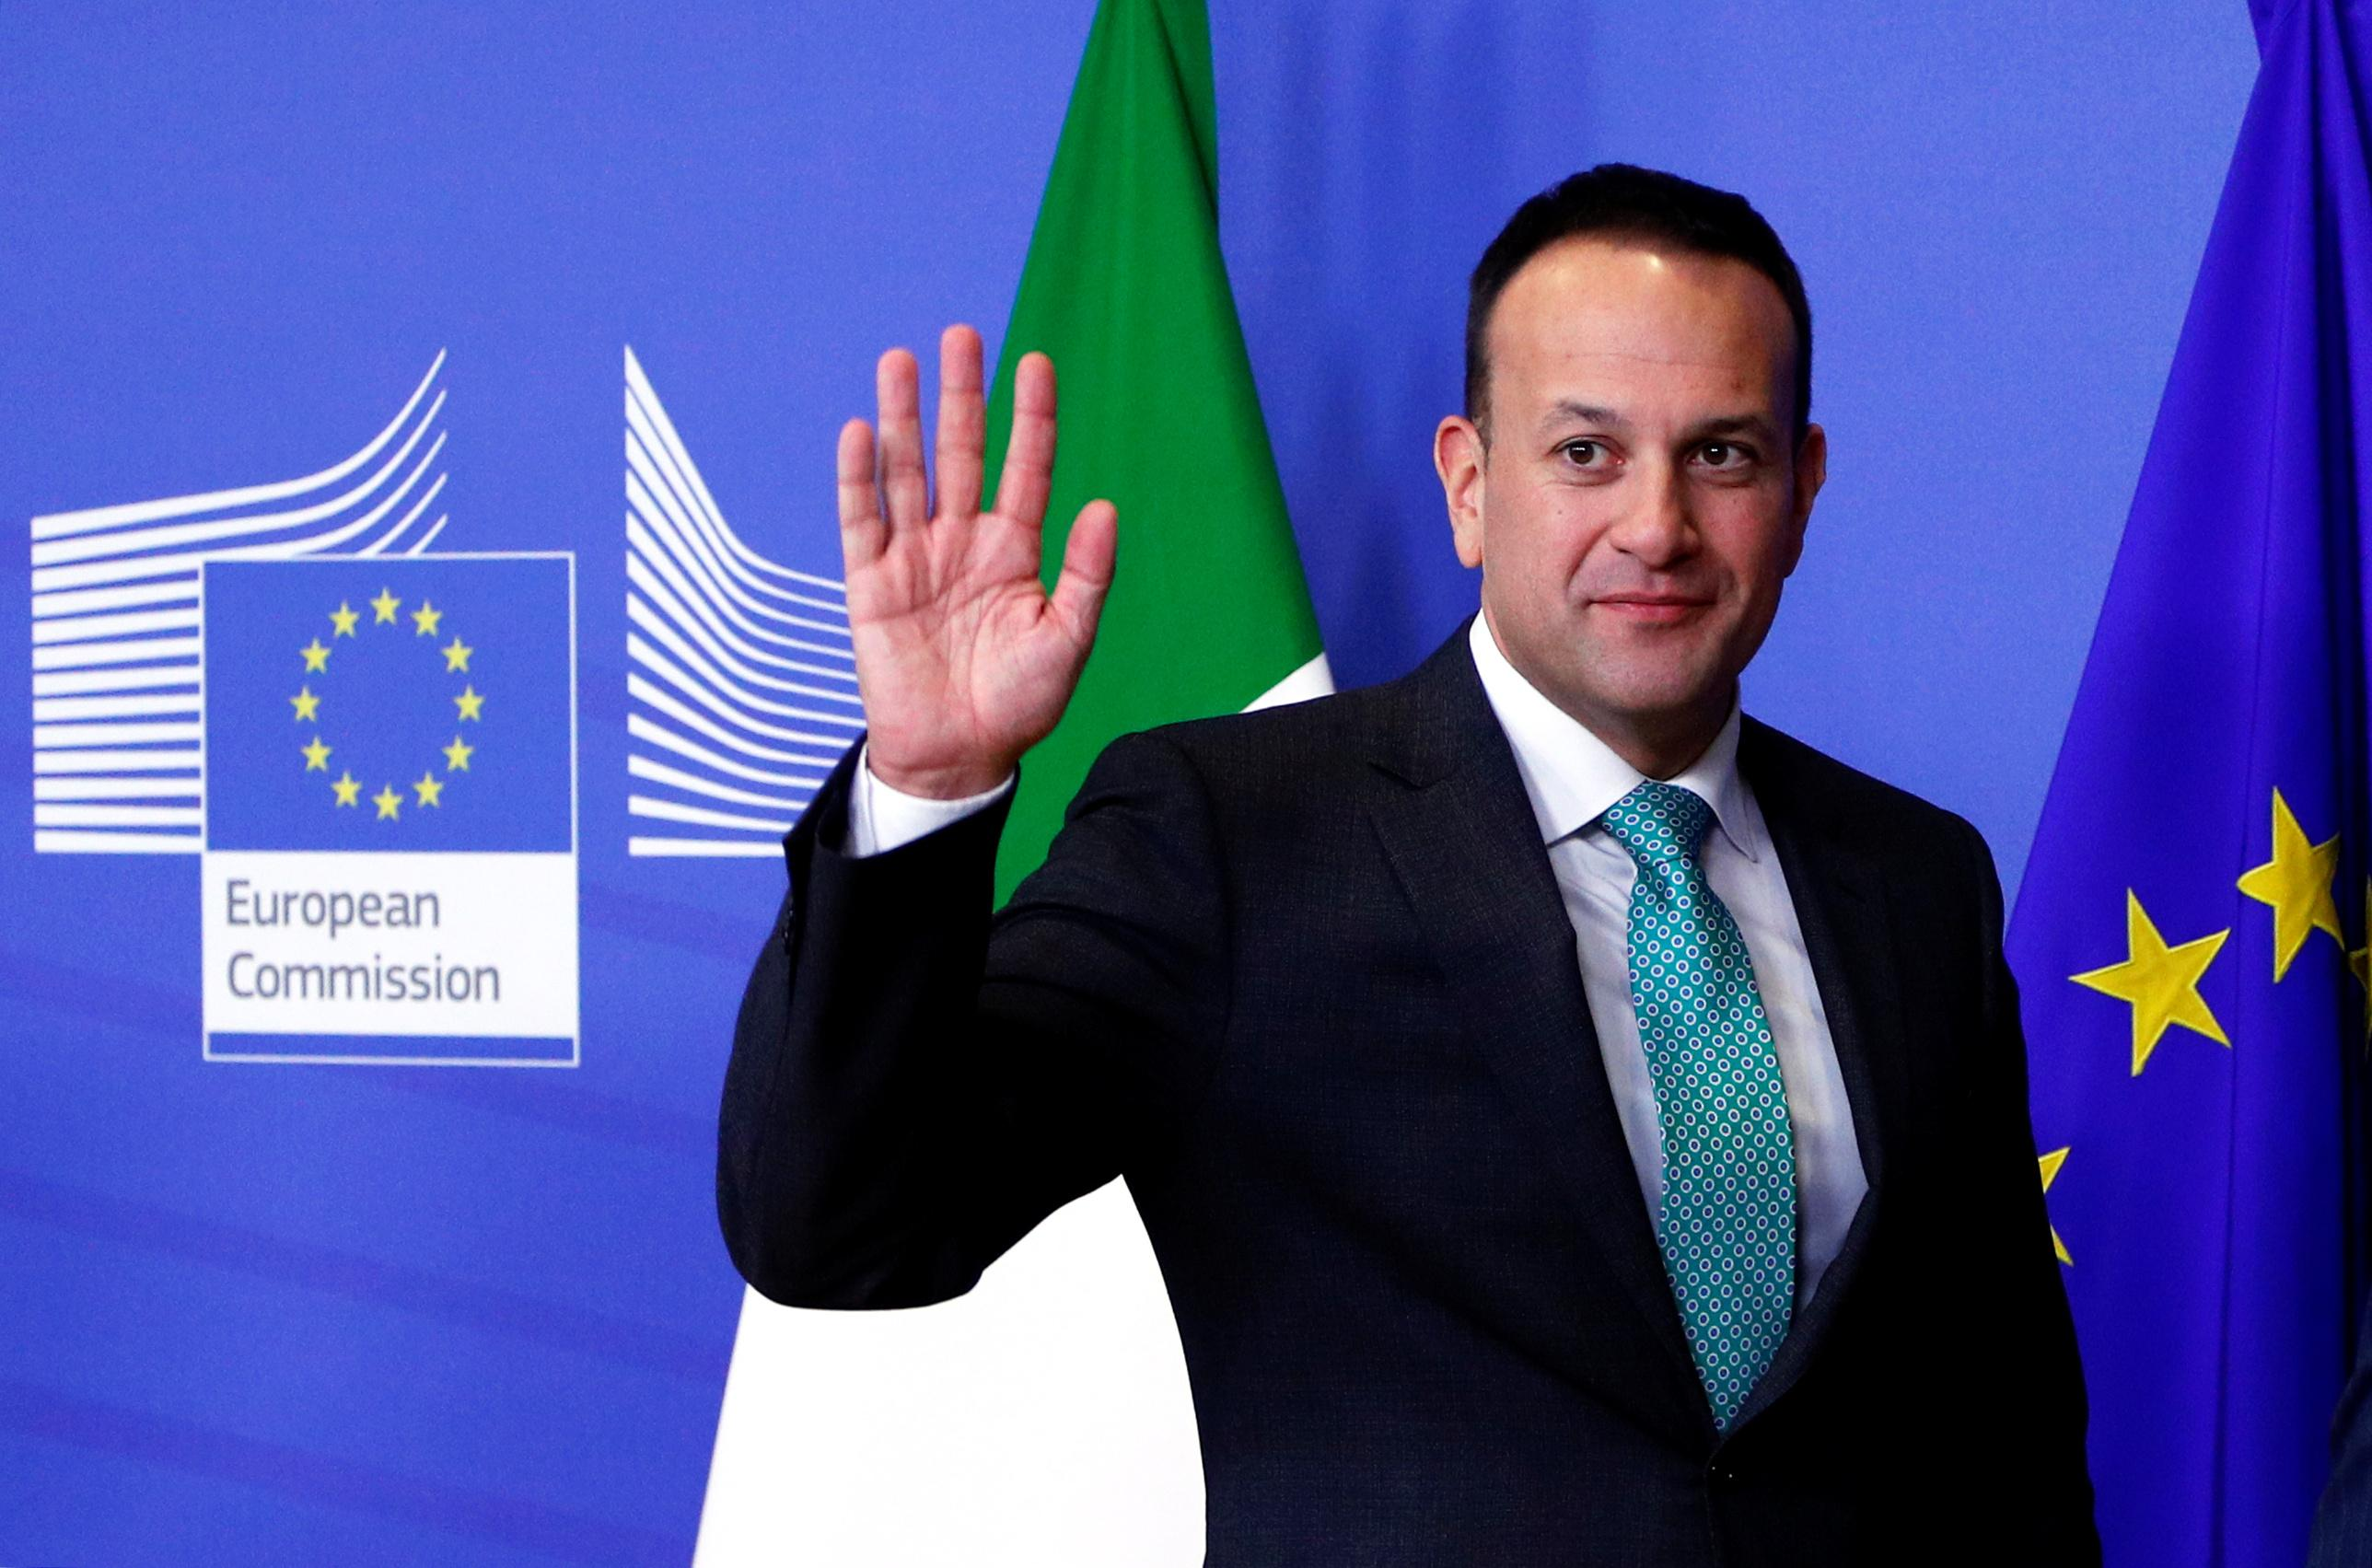 Irish PM: I believe we will strike a Brexit deal